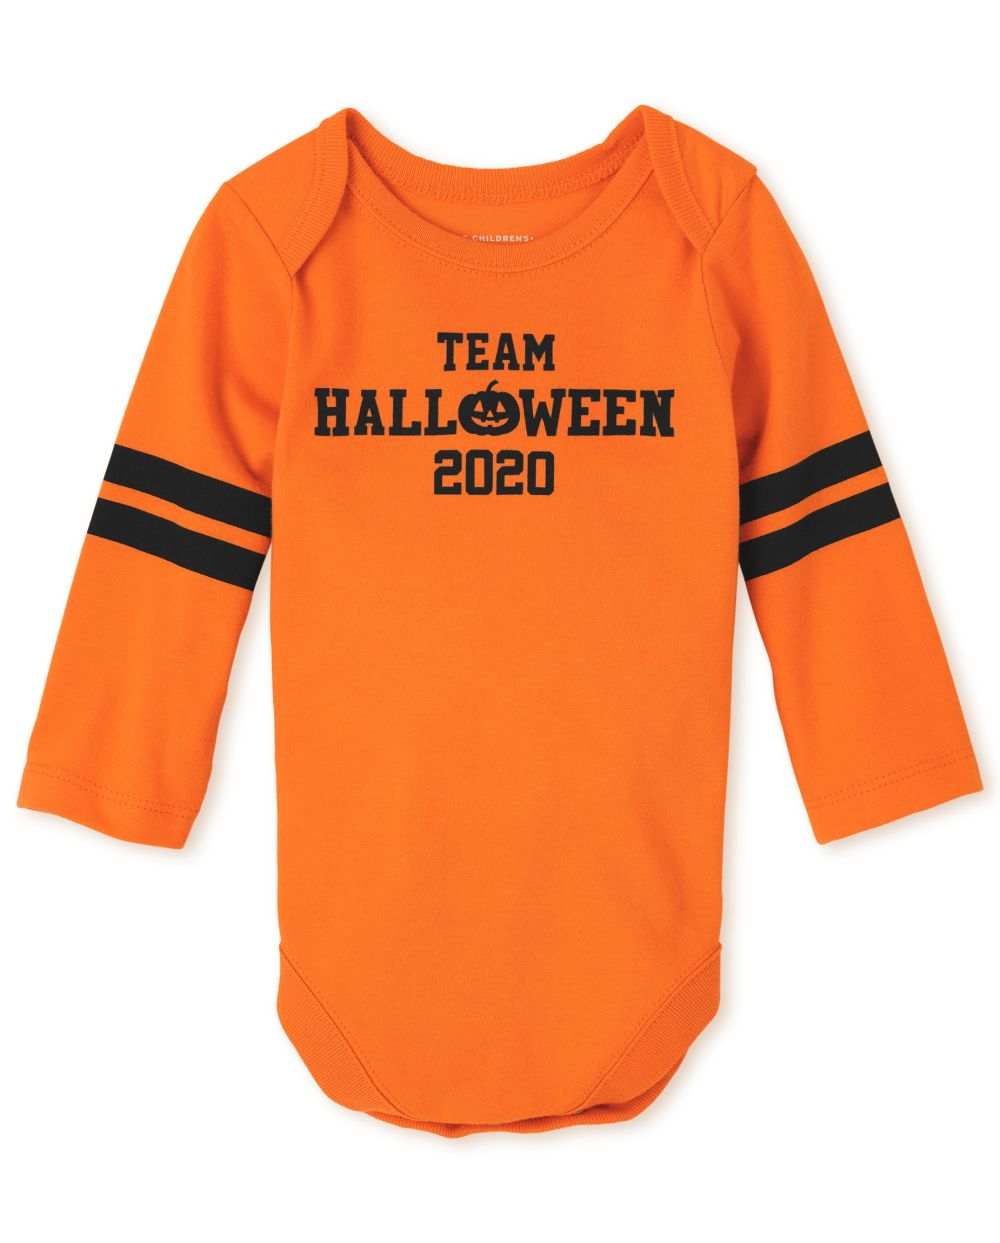 Unisex Baby Matching Family Halloween 2020 Graphic Bodysuit